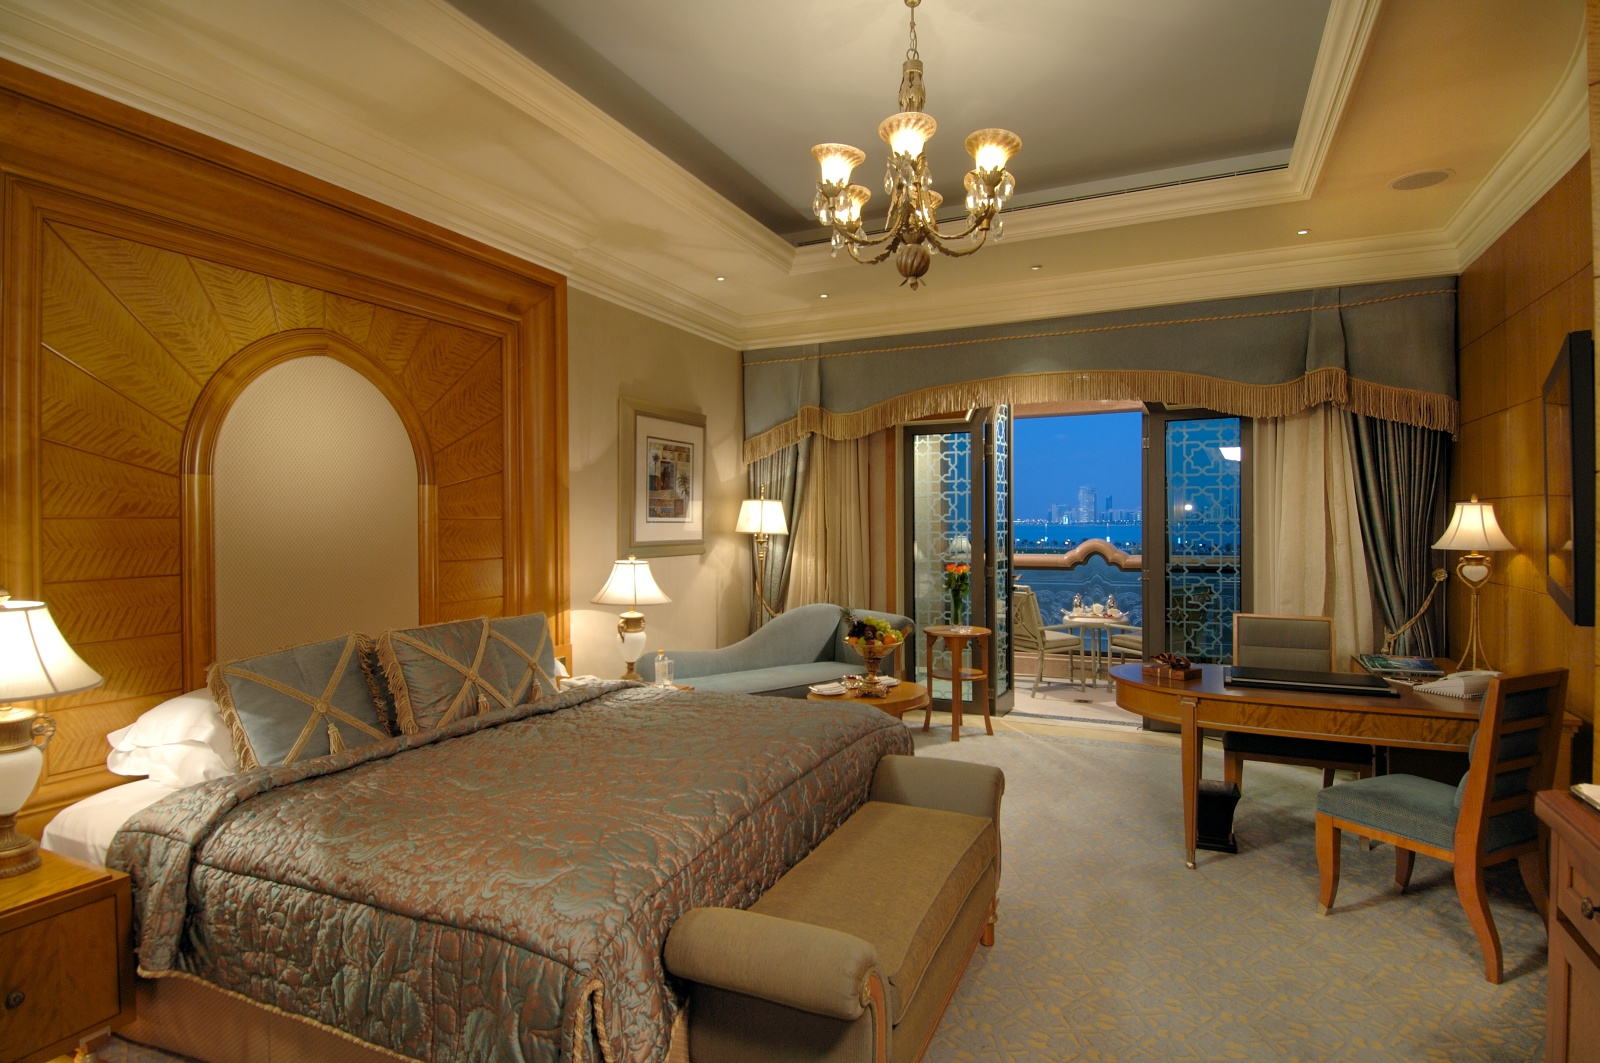 Most expensive hotel emirates palace abu dhabi bon vita for Hotels in uae